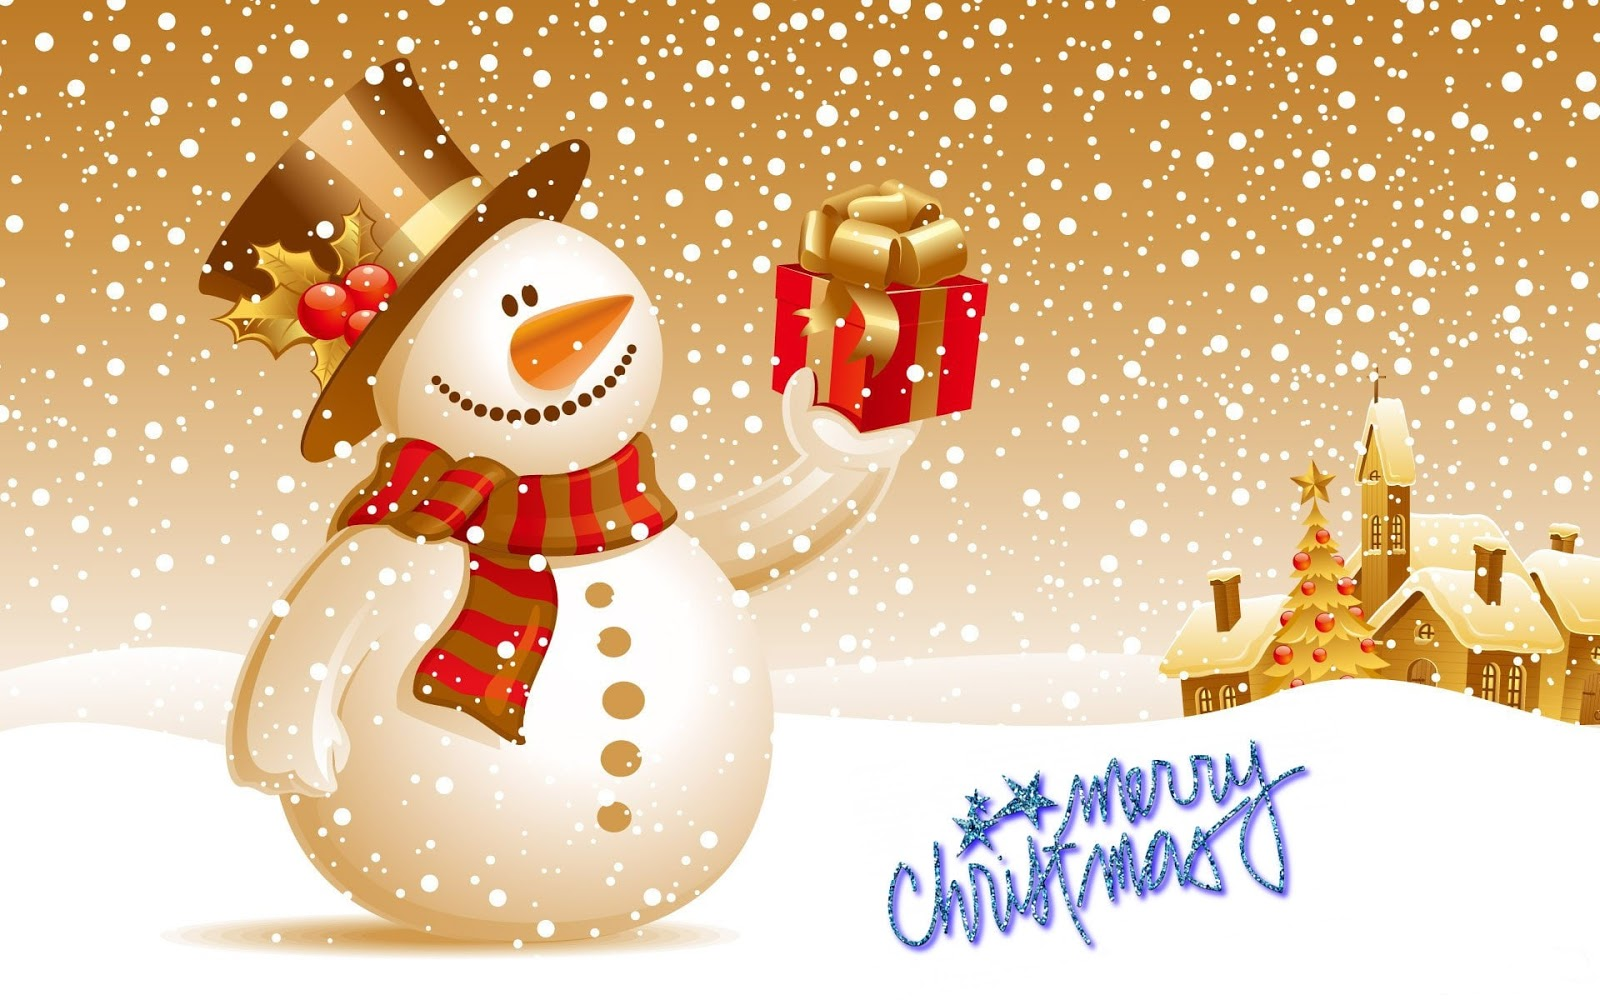 Merry Christmas Wishes Images 10